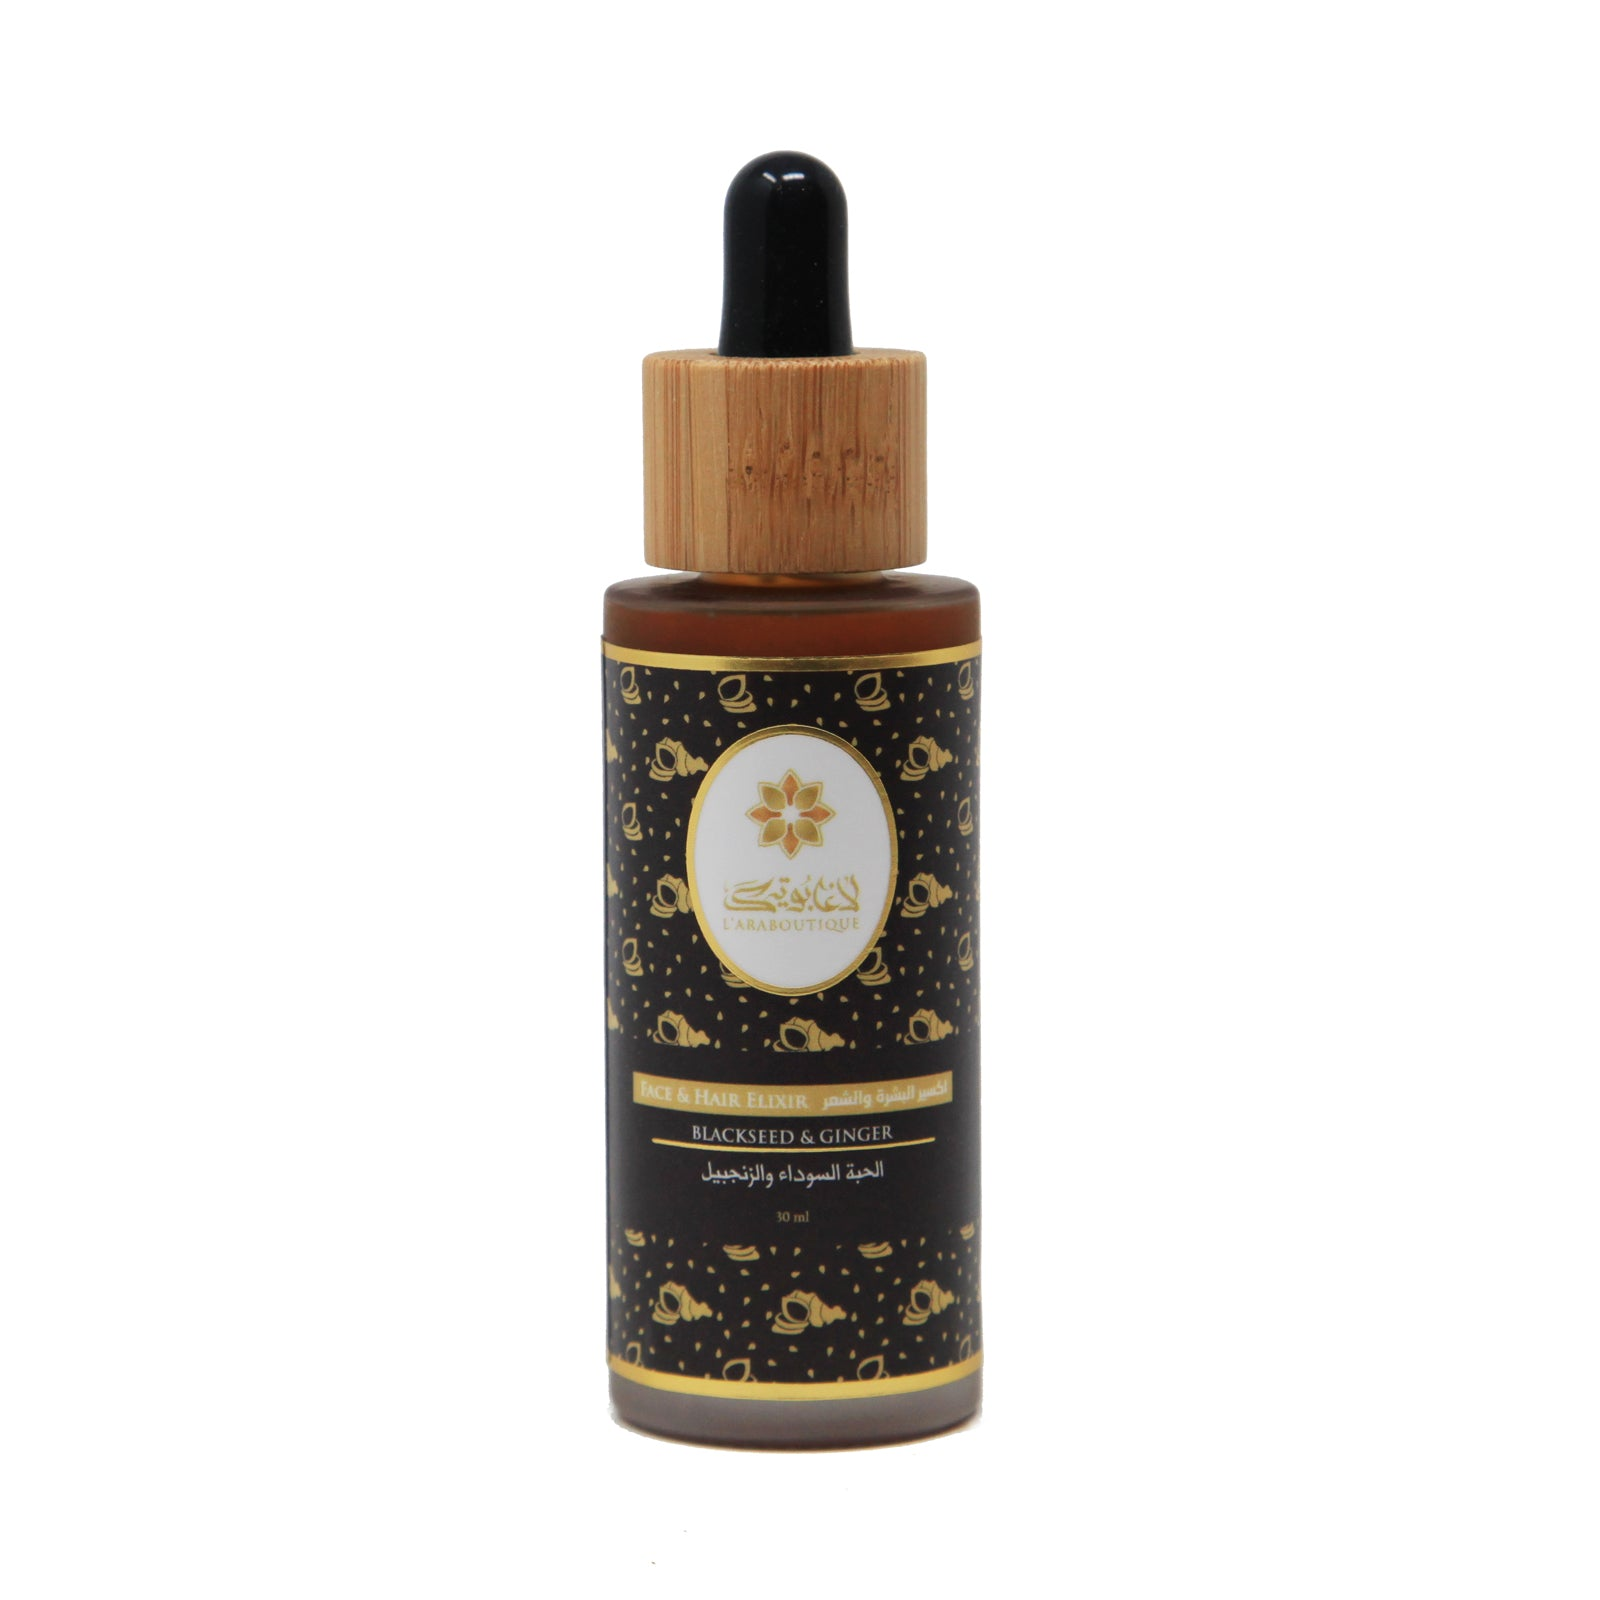 Blackseed and Ginger Elixir - 30ml